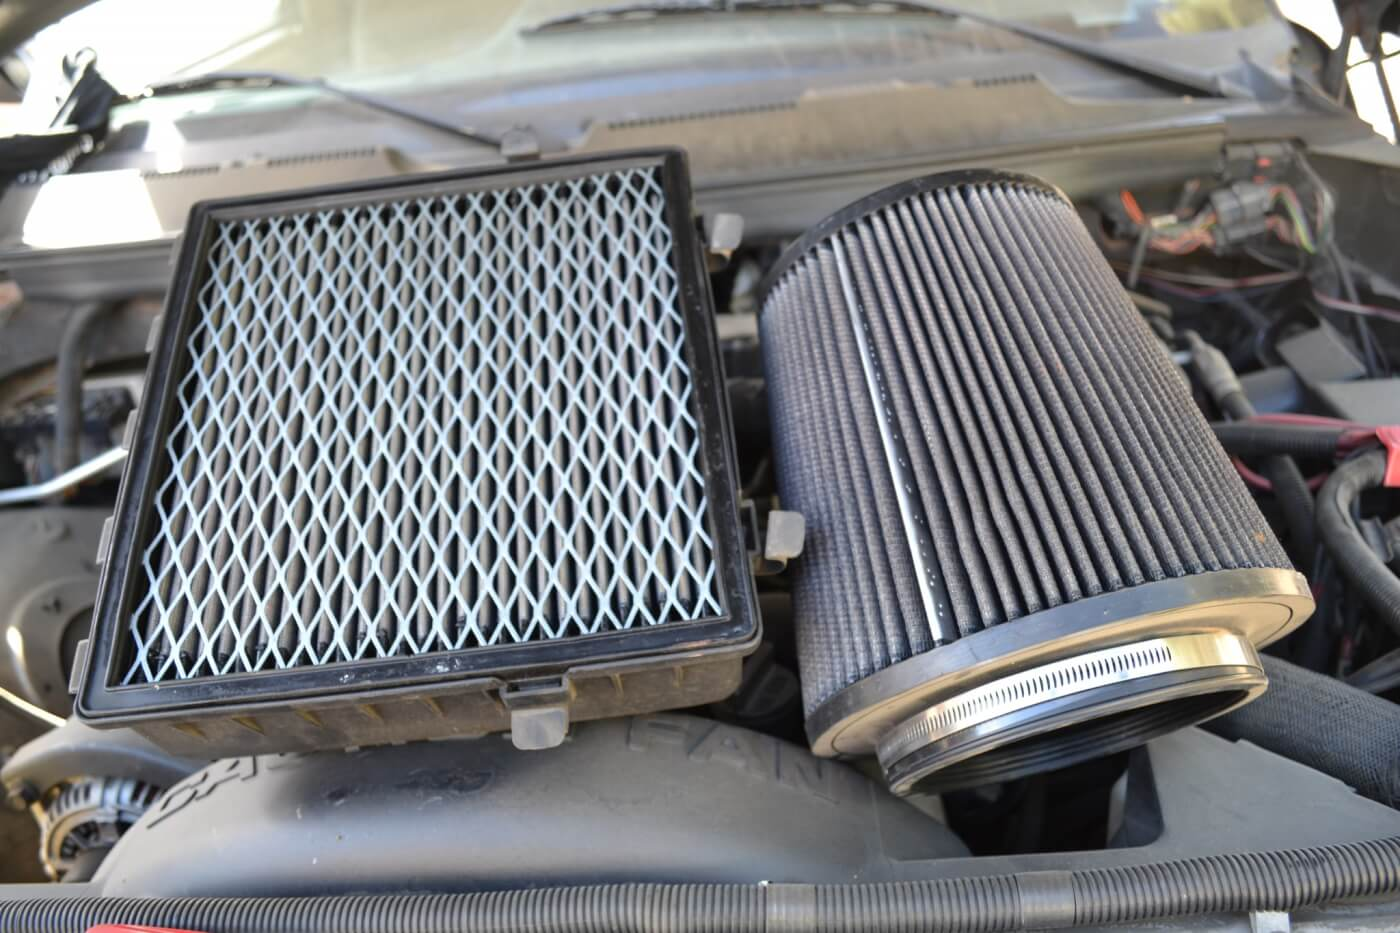 12. If you think of a conical filter spread out and rolled flat, you can see how much more surface area the AFE filter has compared to the filter in the stock airbox.